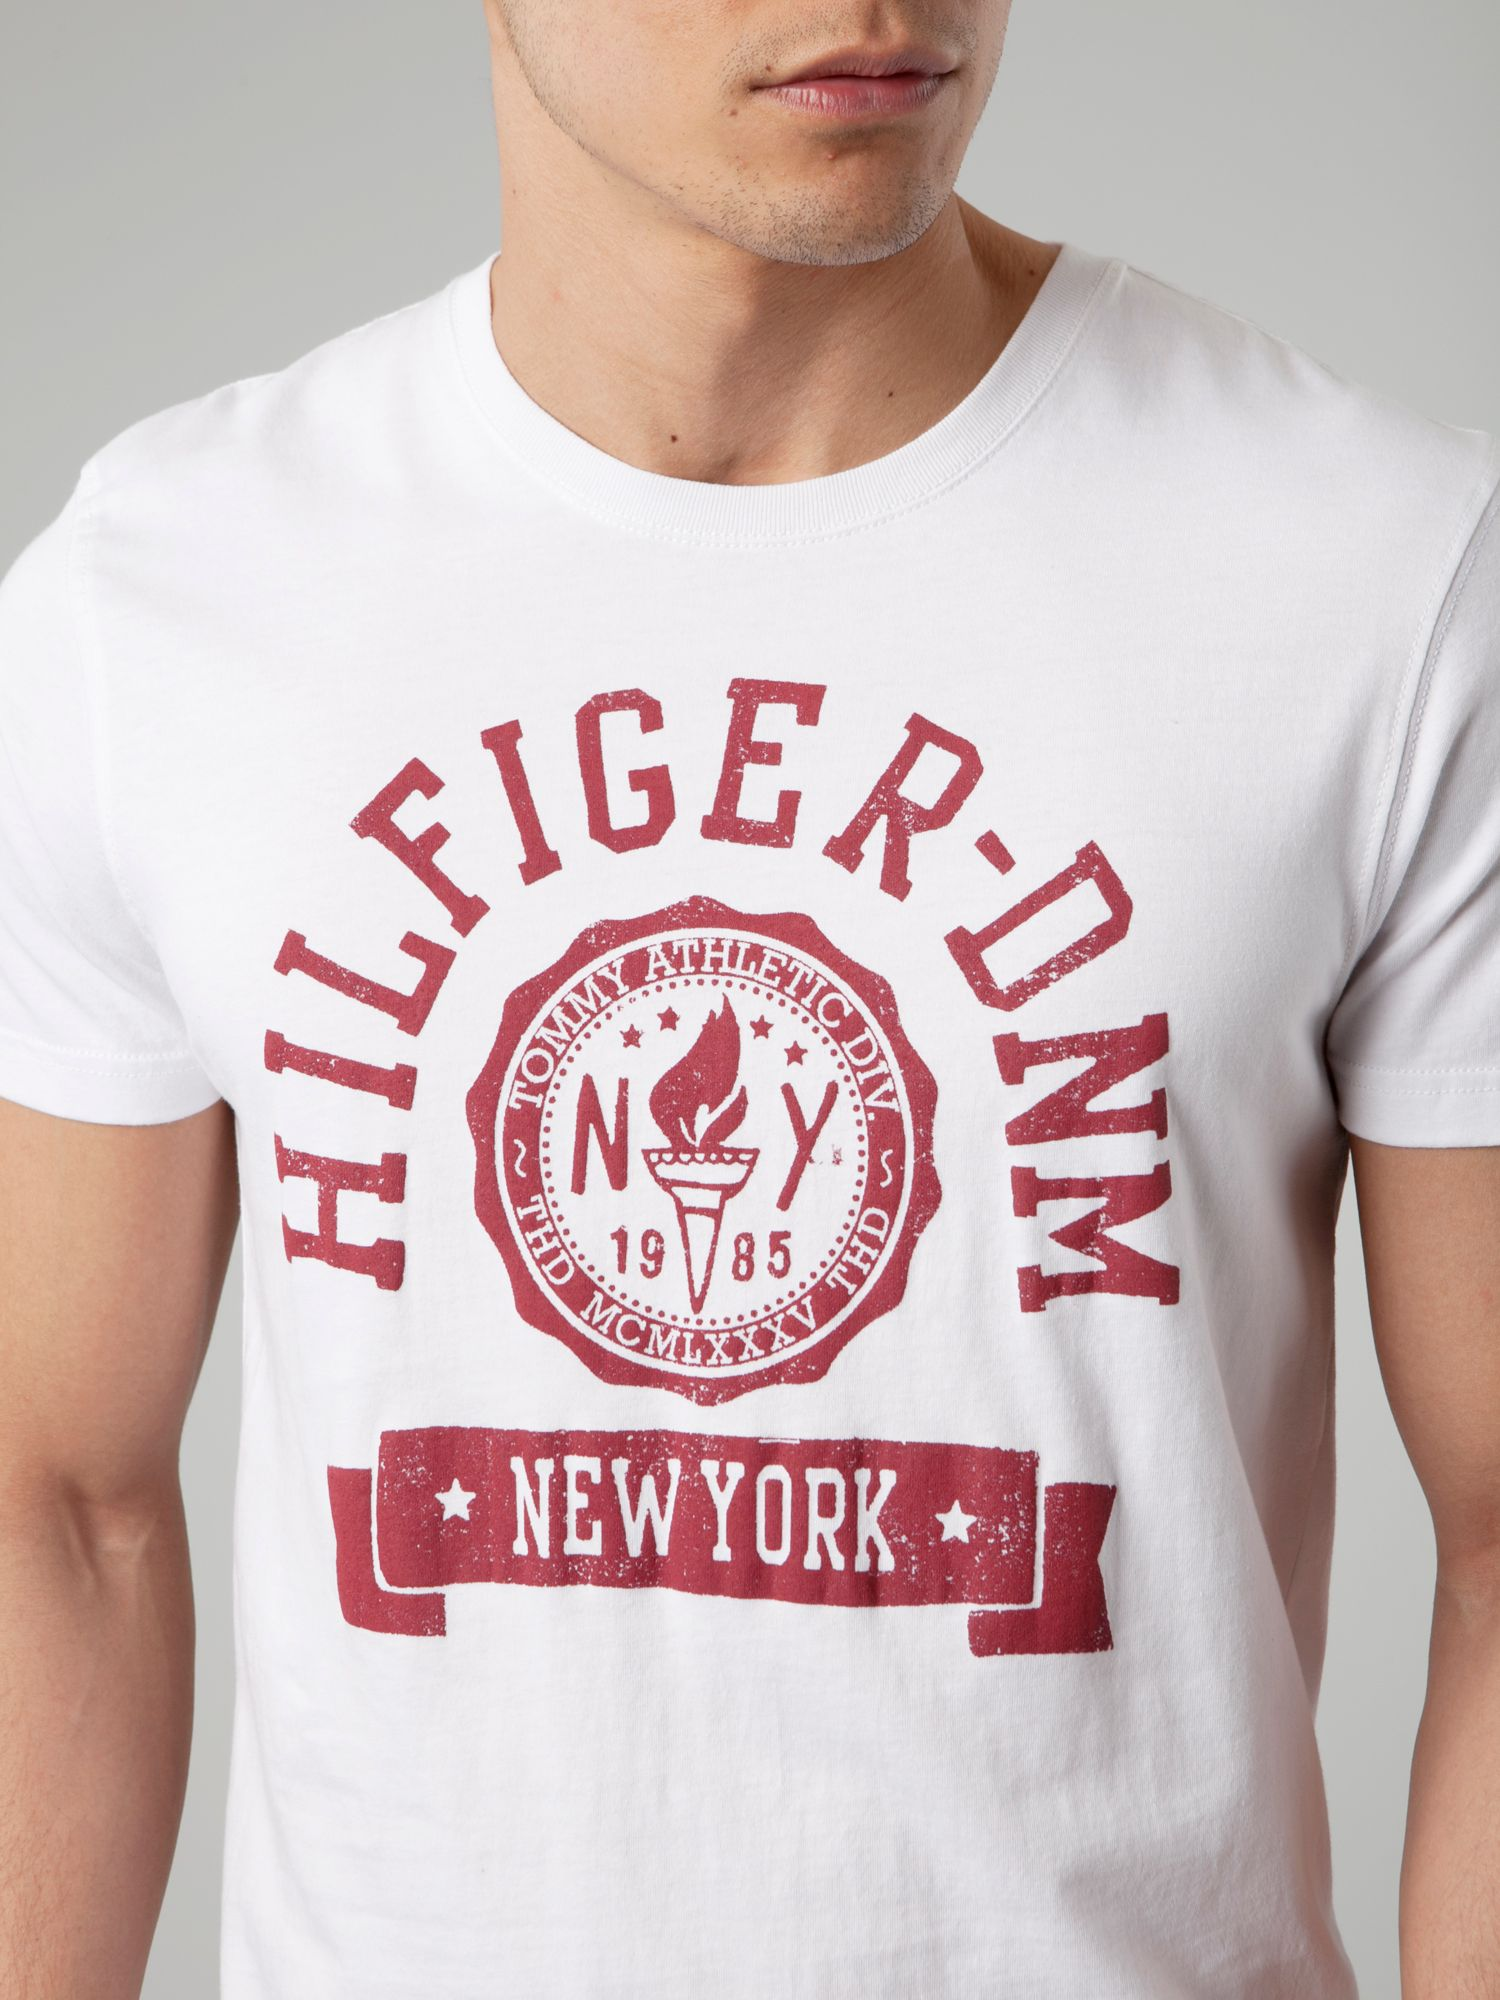 tommy hilfiger federer tshirt in white for men lyst. Black Bedroom Furniture Sets. Home Design Ideas